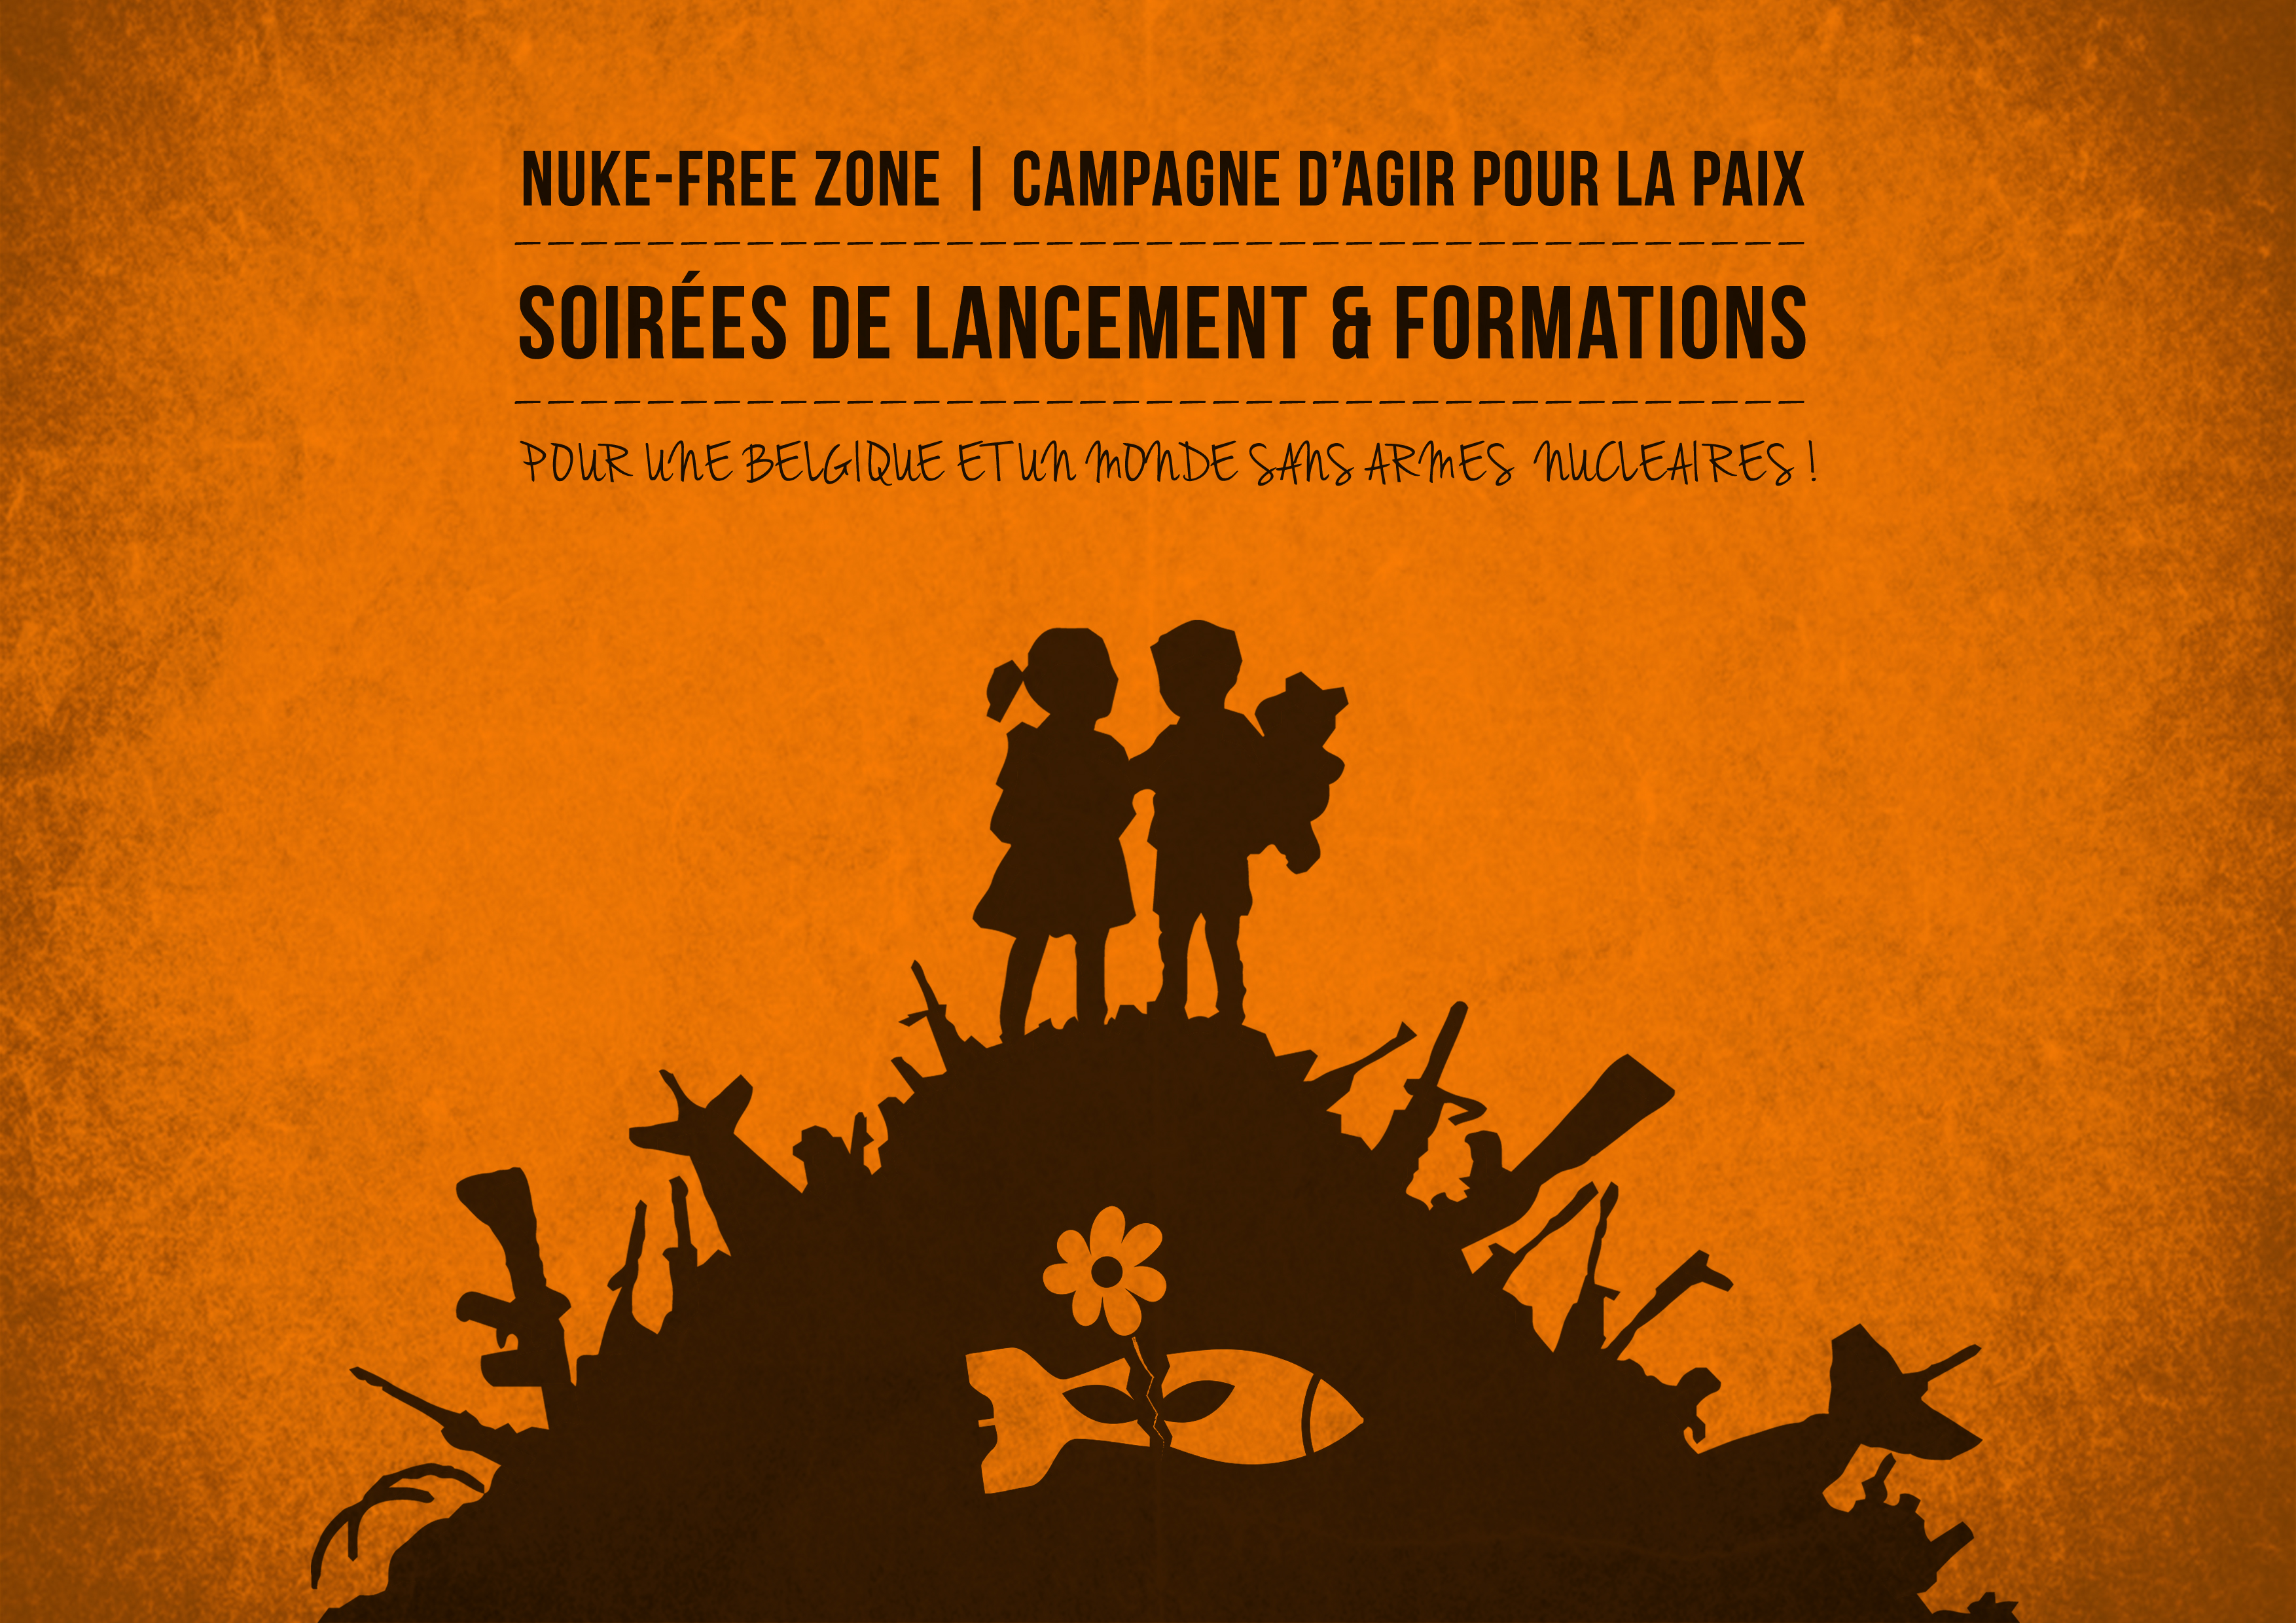 nfz_lancement_formations